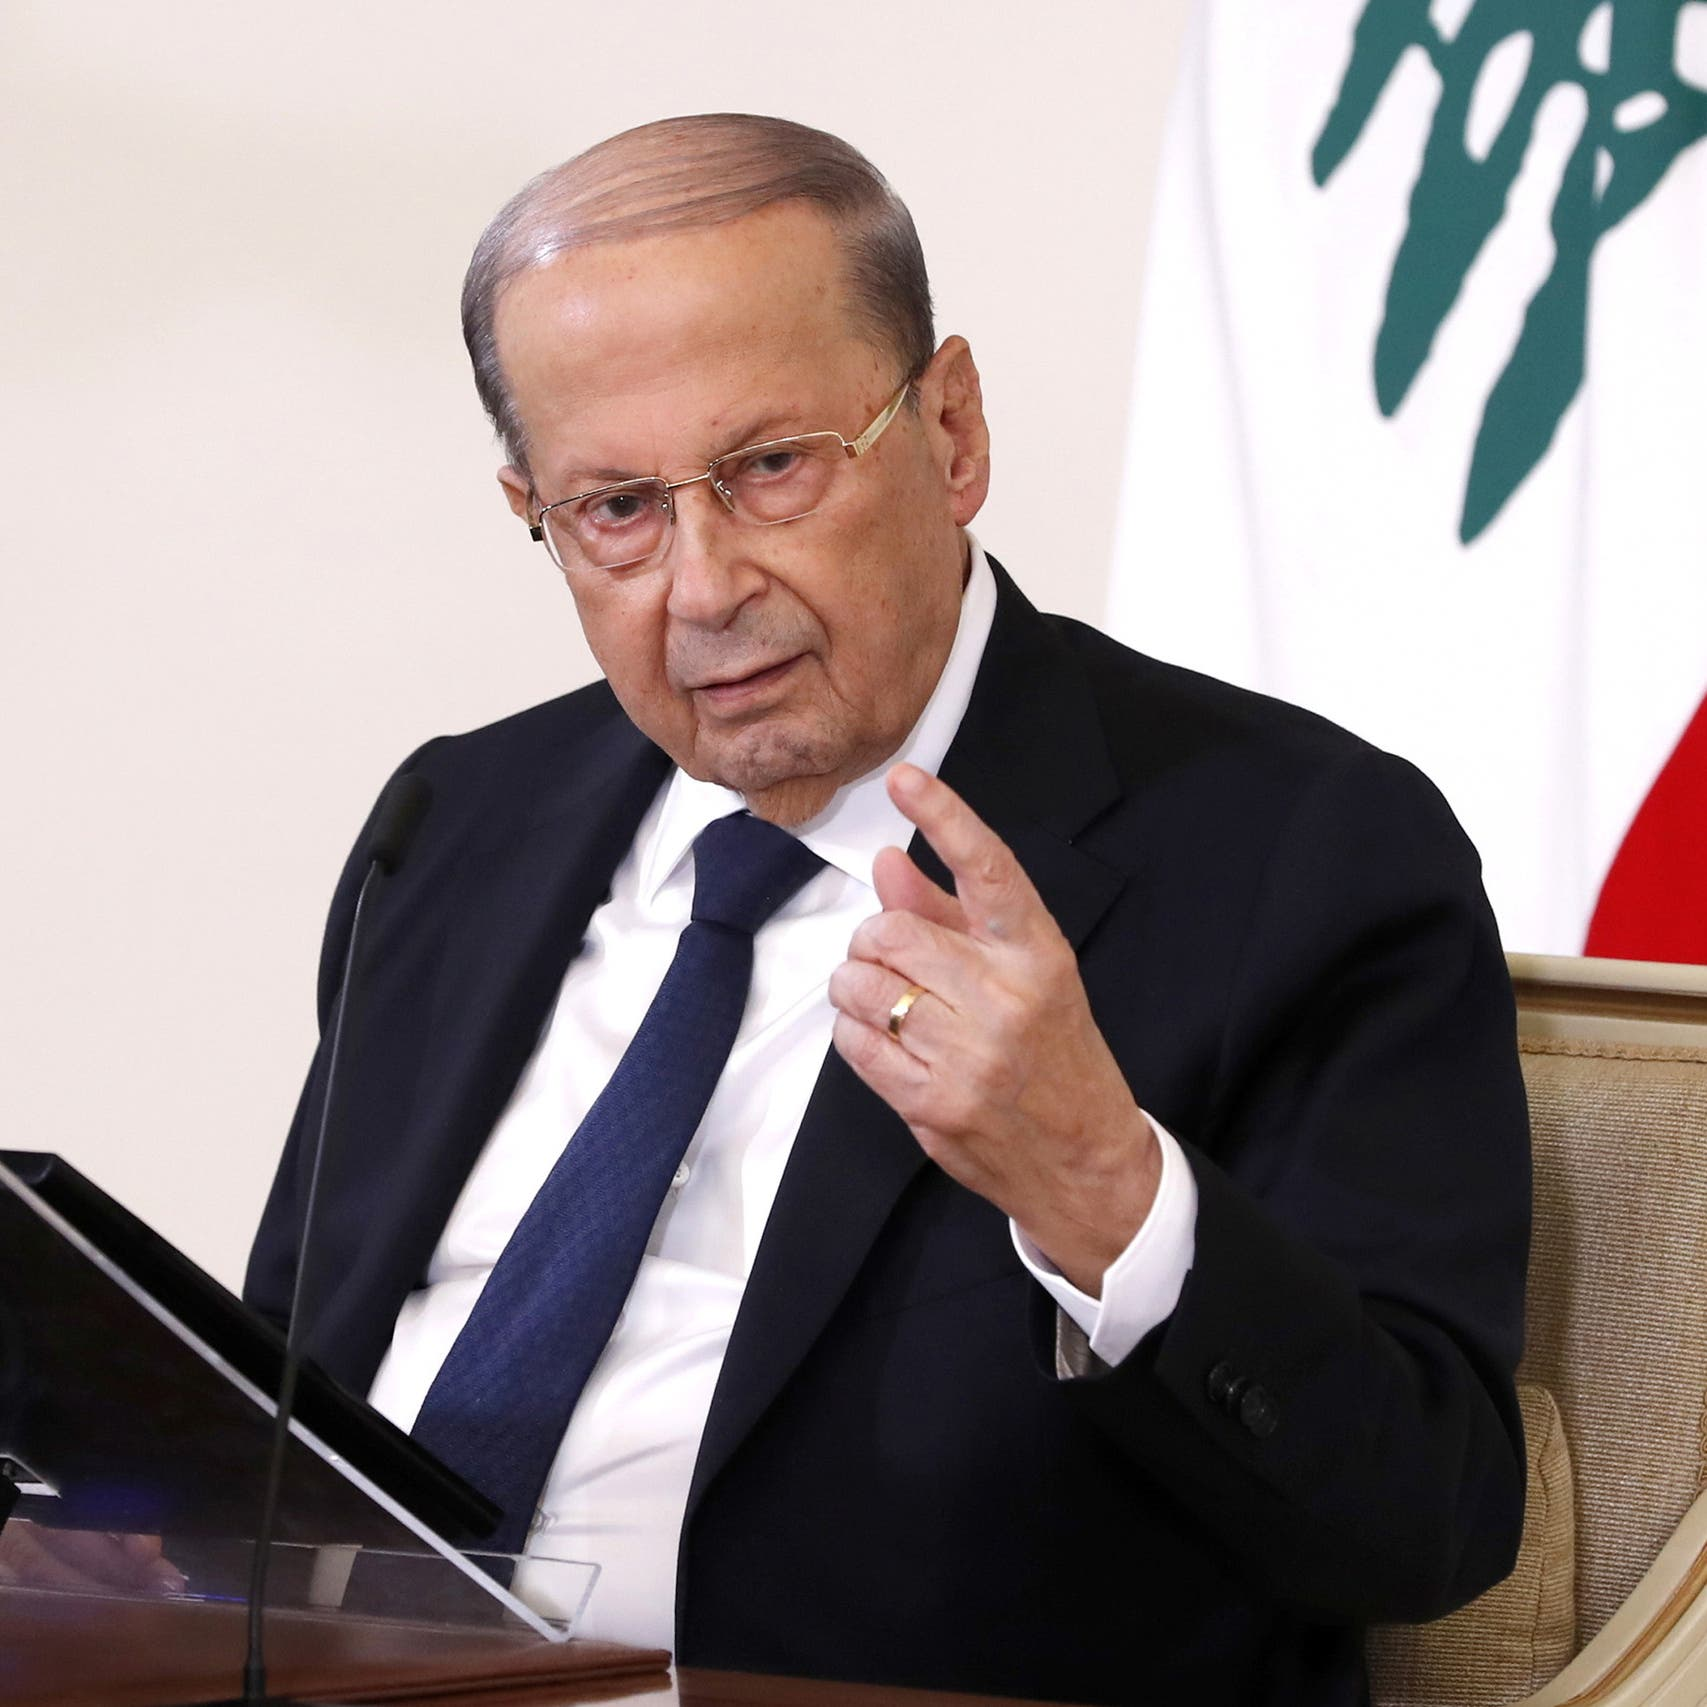 Lebanon's Aoun summons central bank governor after fuel subsidies lifted